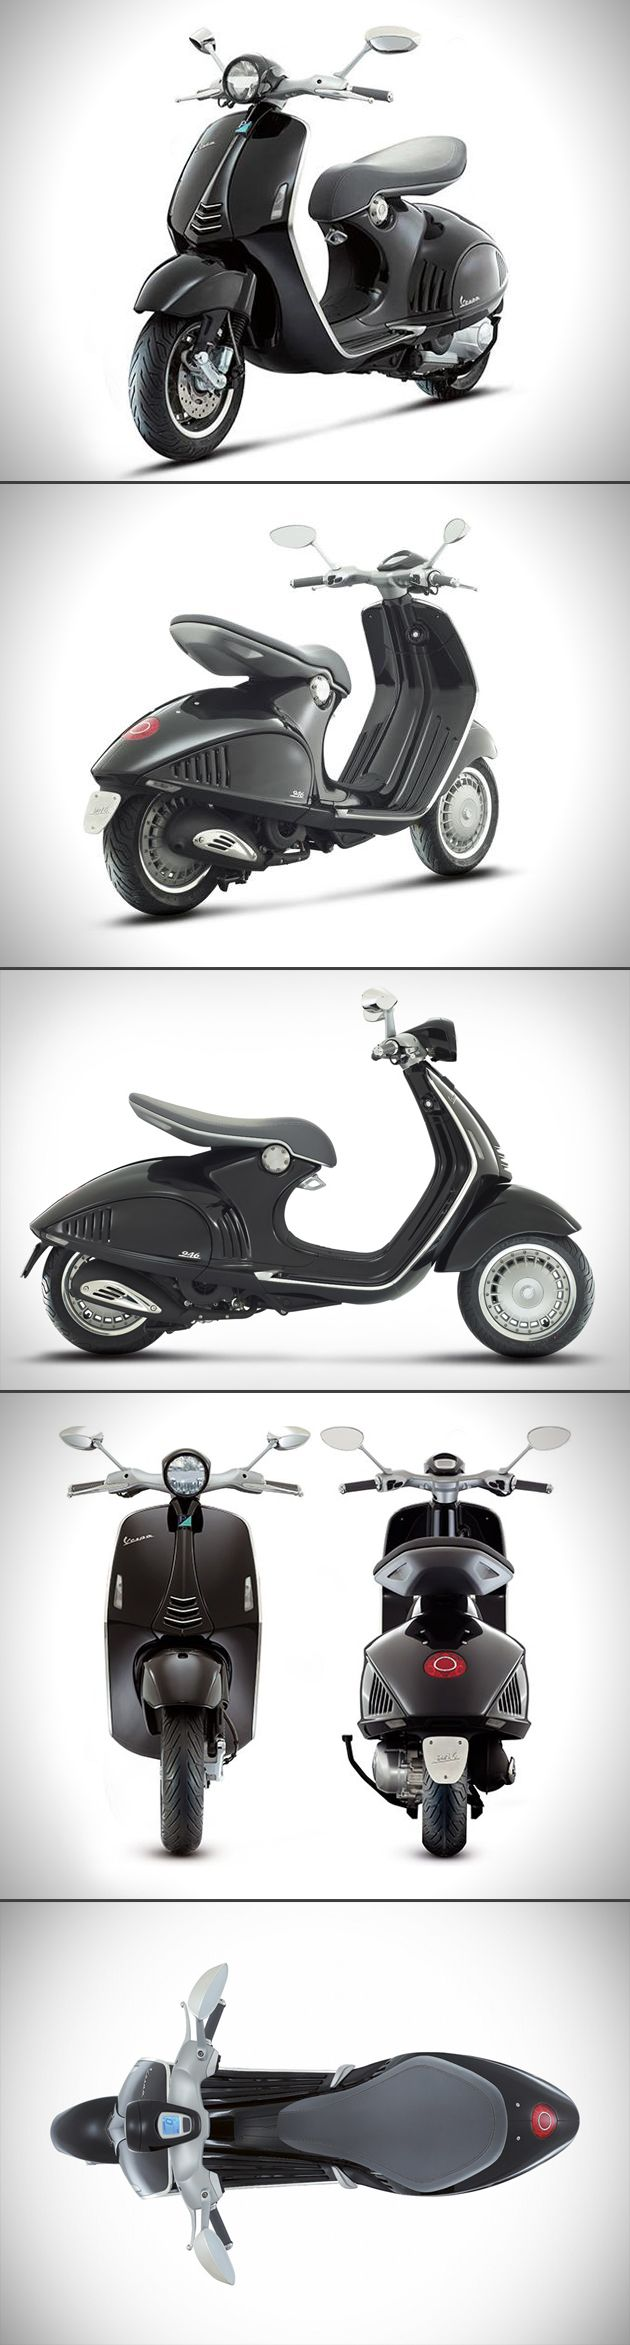 VESPA 946 - Australia 2013 sold out. 2014 may well be my year then...